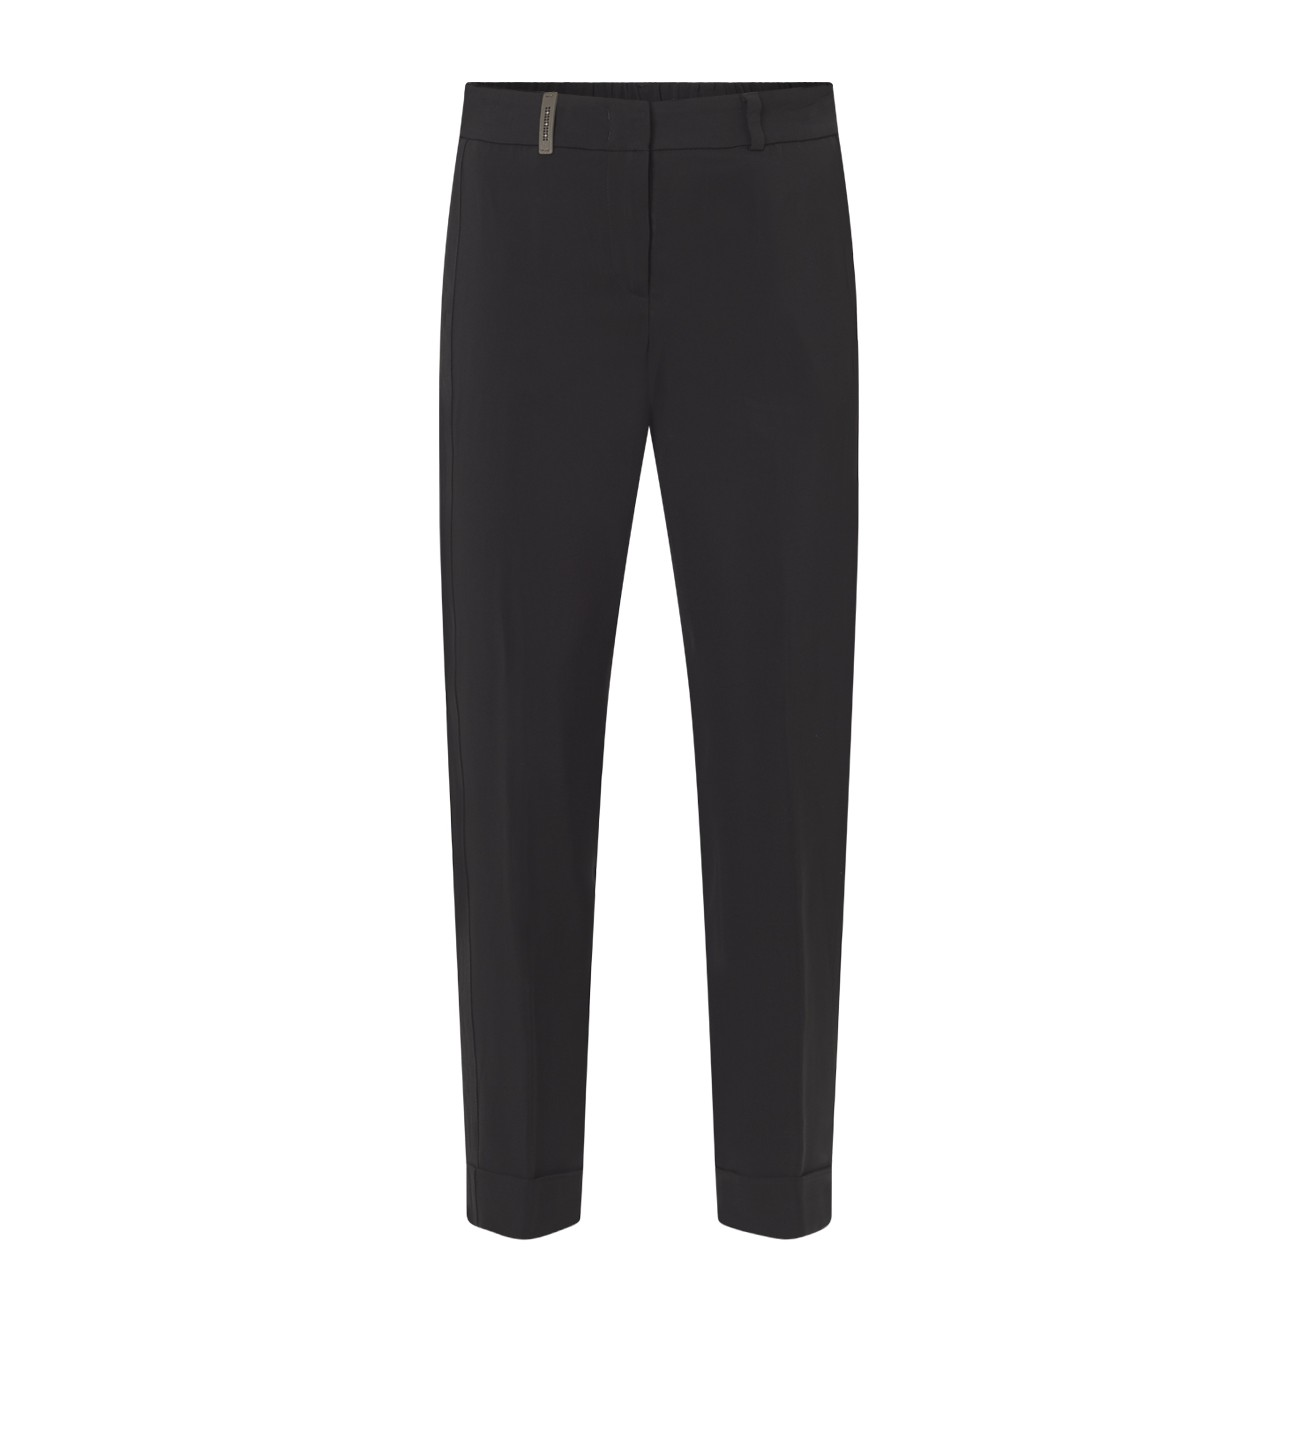 PESERICO_STRAIGHT_FIT_CREPE_TROUSERS_WITH_TURNED_UP_CUFFS_MARIONA_FASHION_CLOTHING_WOMAN_SHOP_ONLINE_P04696Z